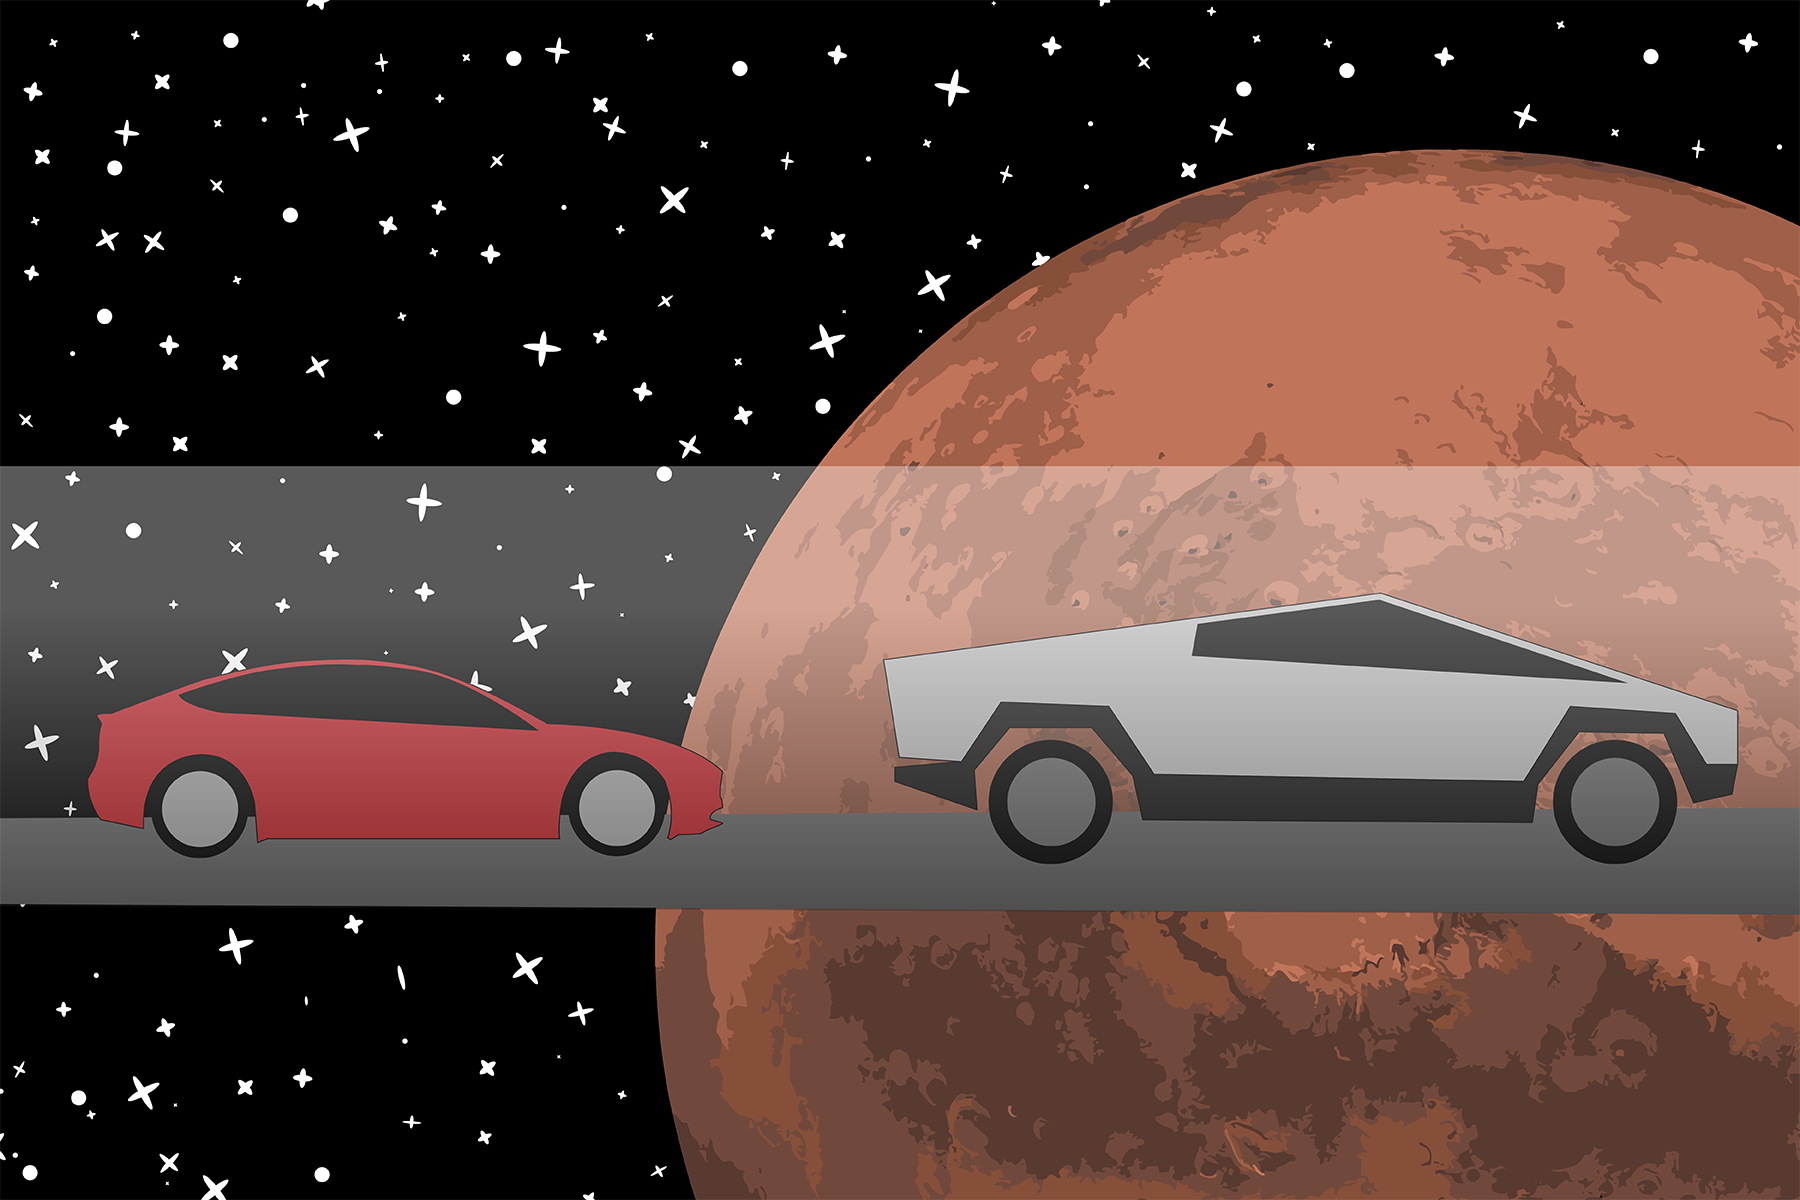 Model 3 Driving to Mars